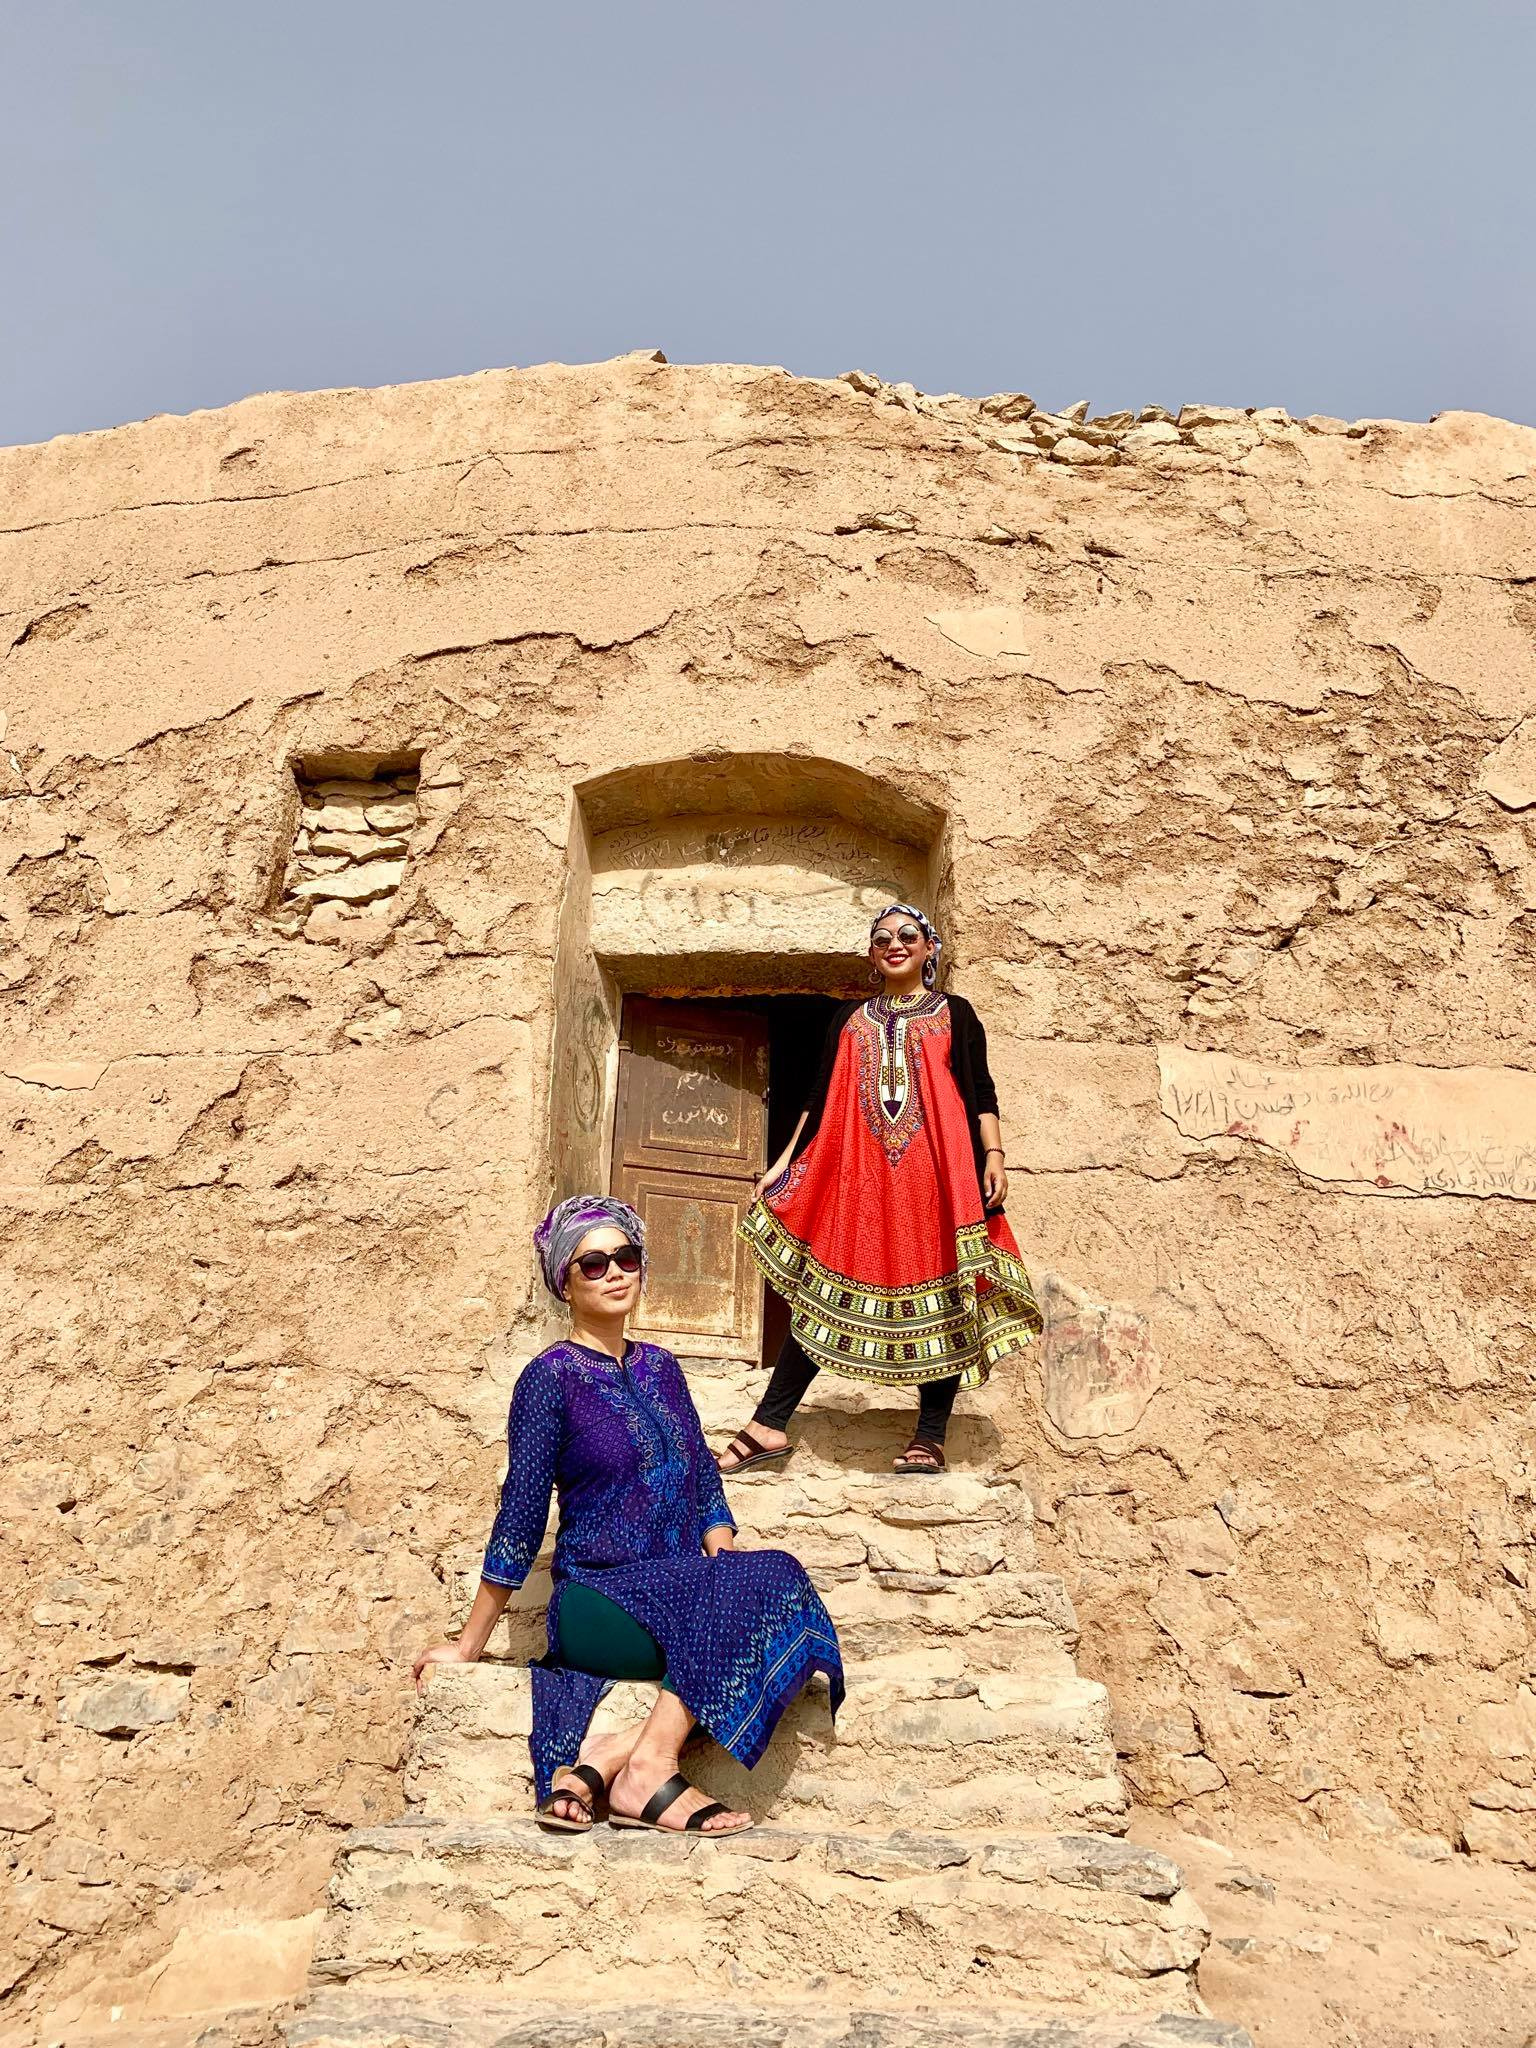 Kach Solo Travels in 2019 Pictorial today at Temple of Silence in Yazd1.jpg